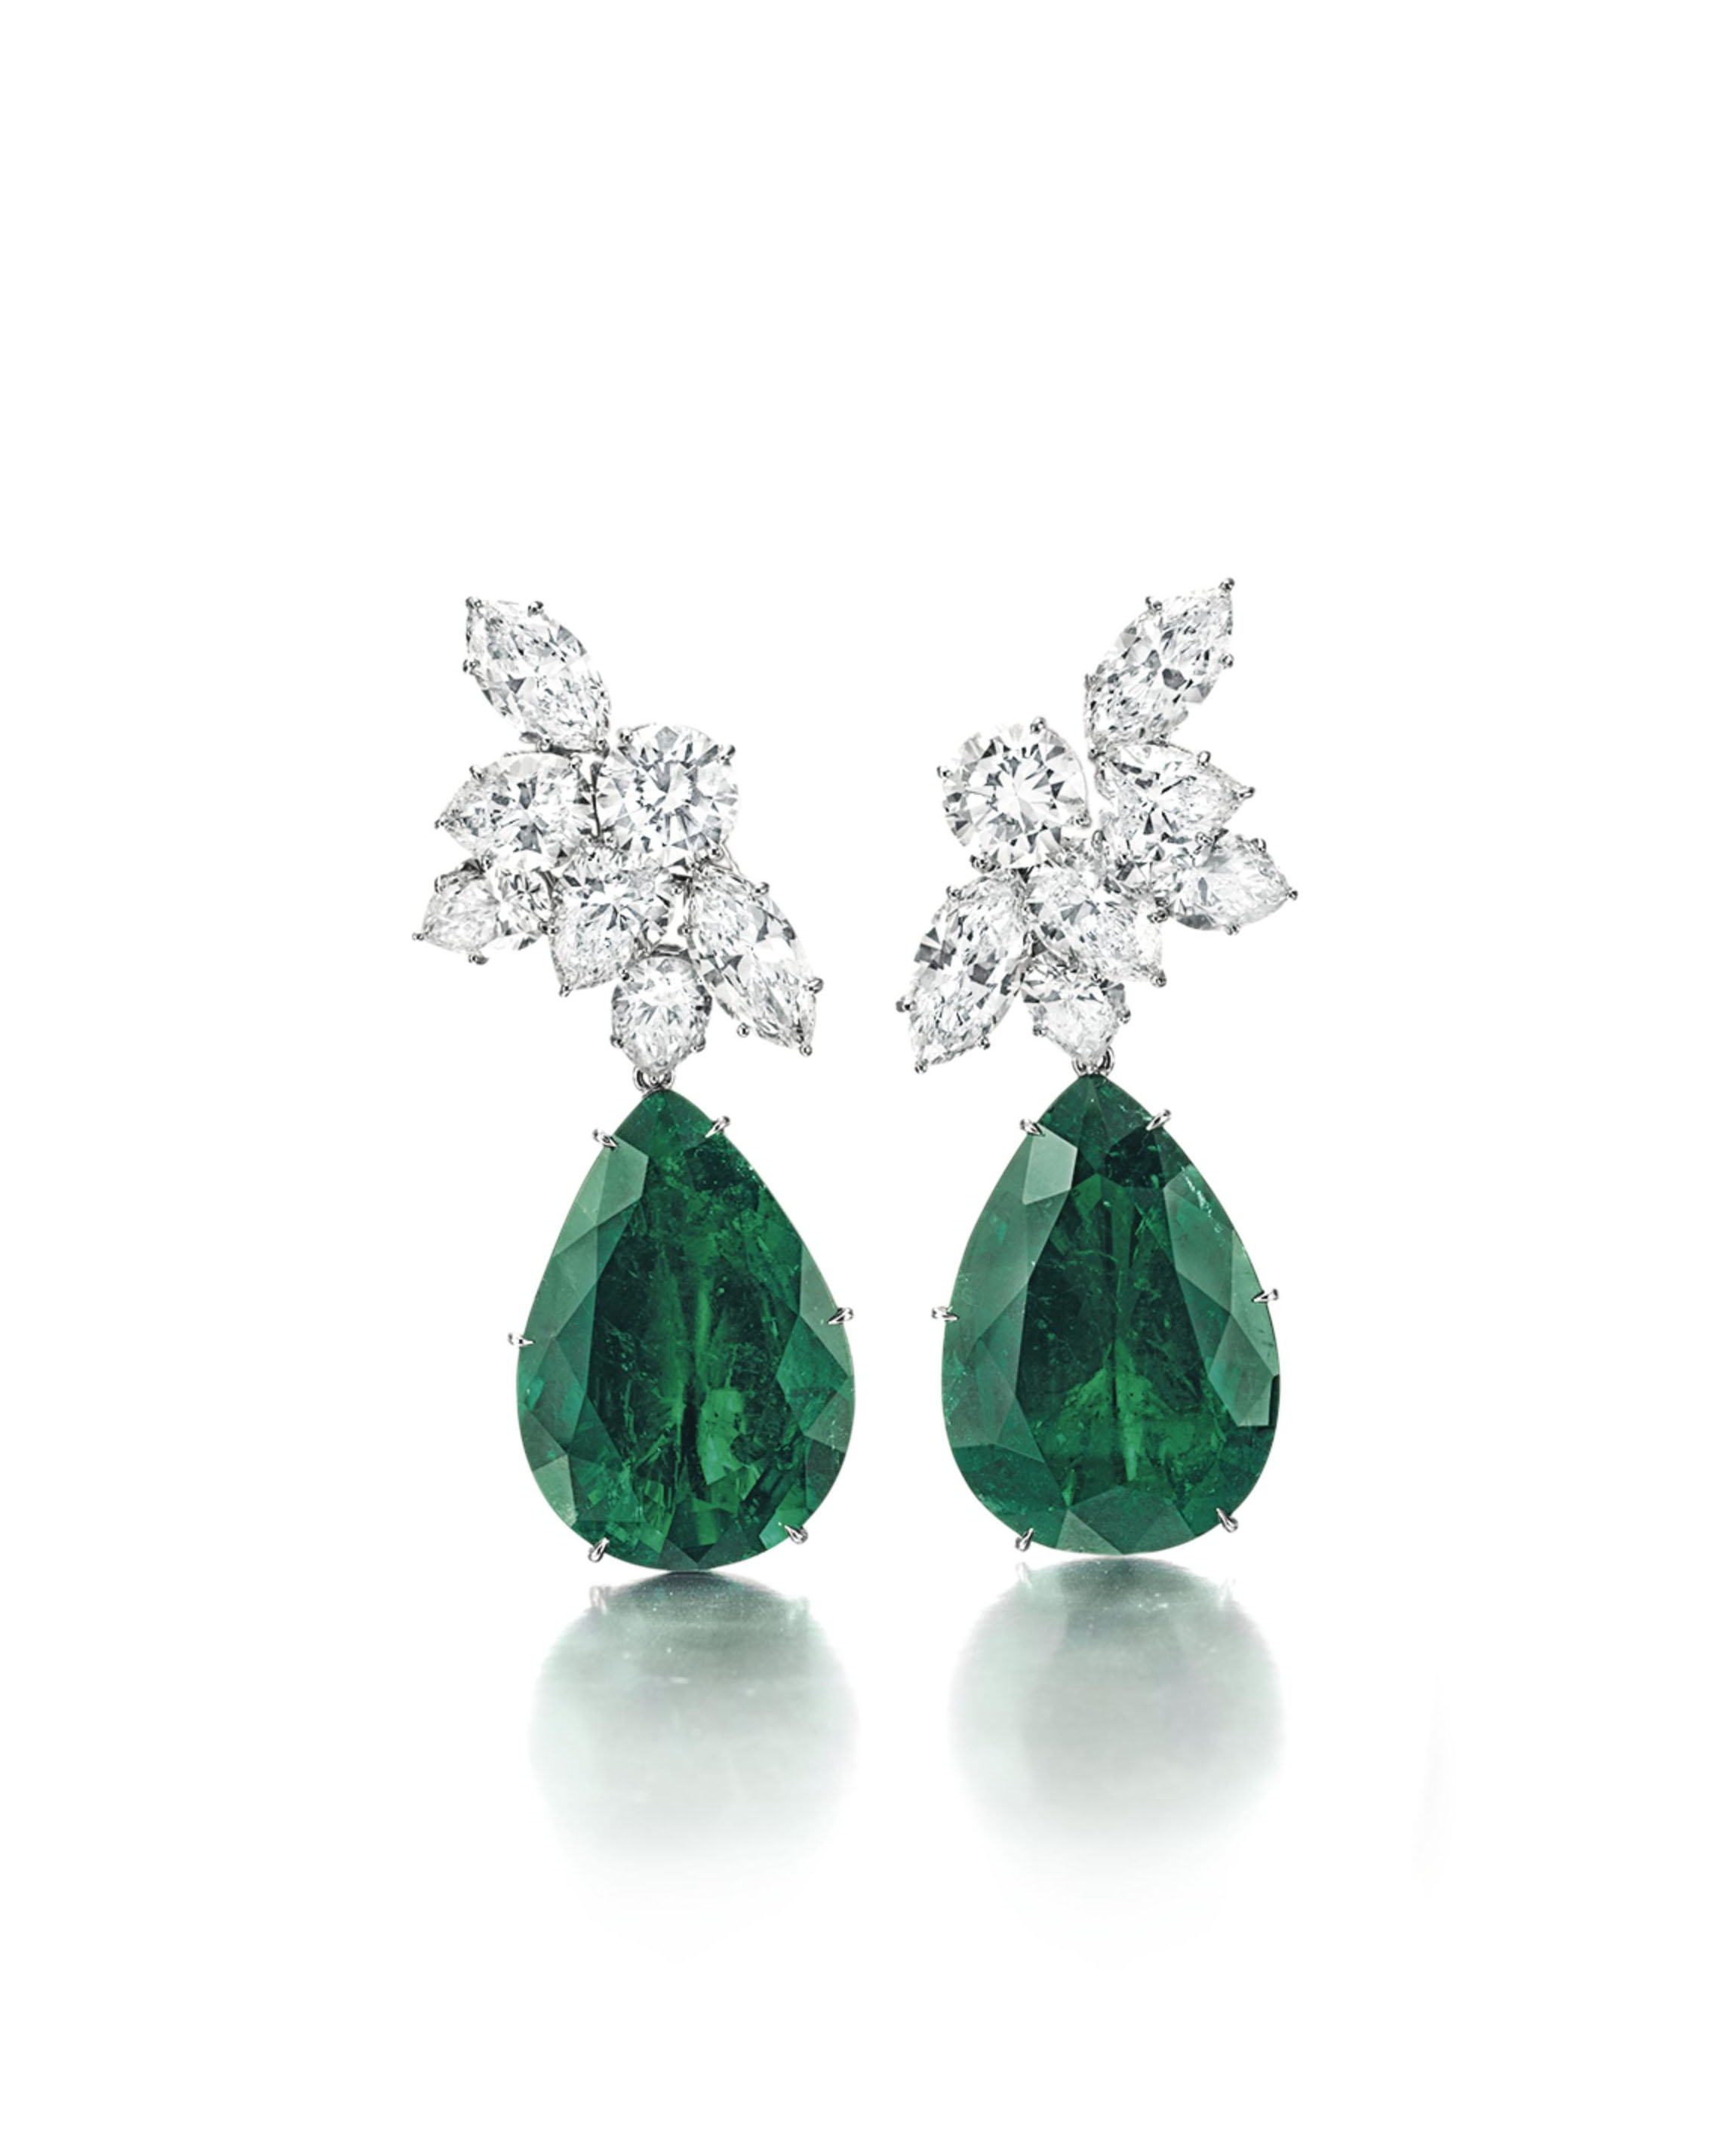 A PAIR OF DIAMOND AND EMERALD EAR PENDANTS